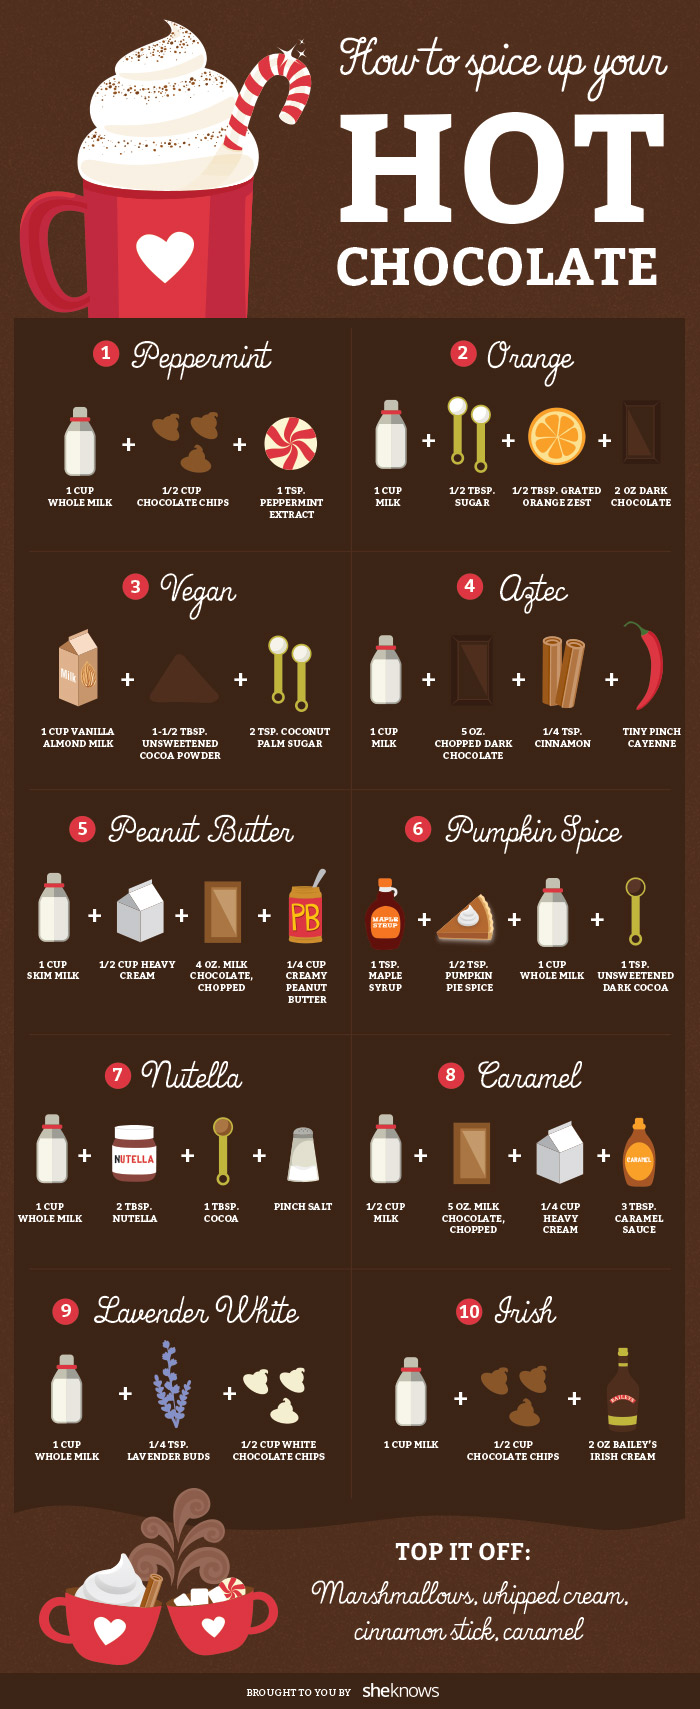 Fabulous Hot Chocolate Ideas!